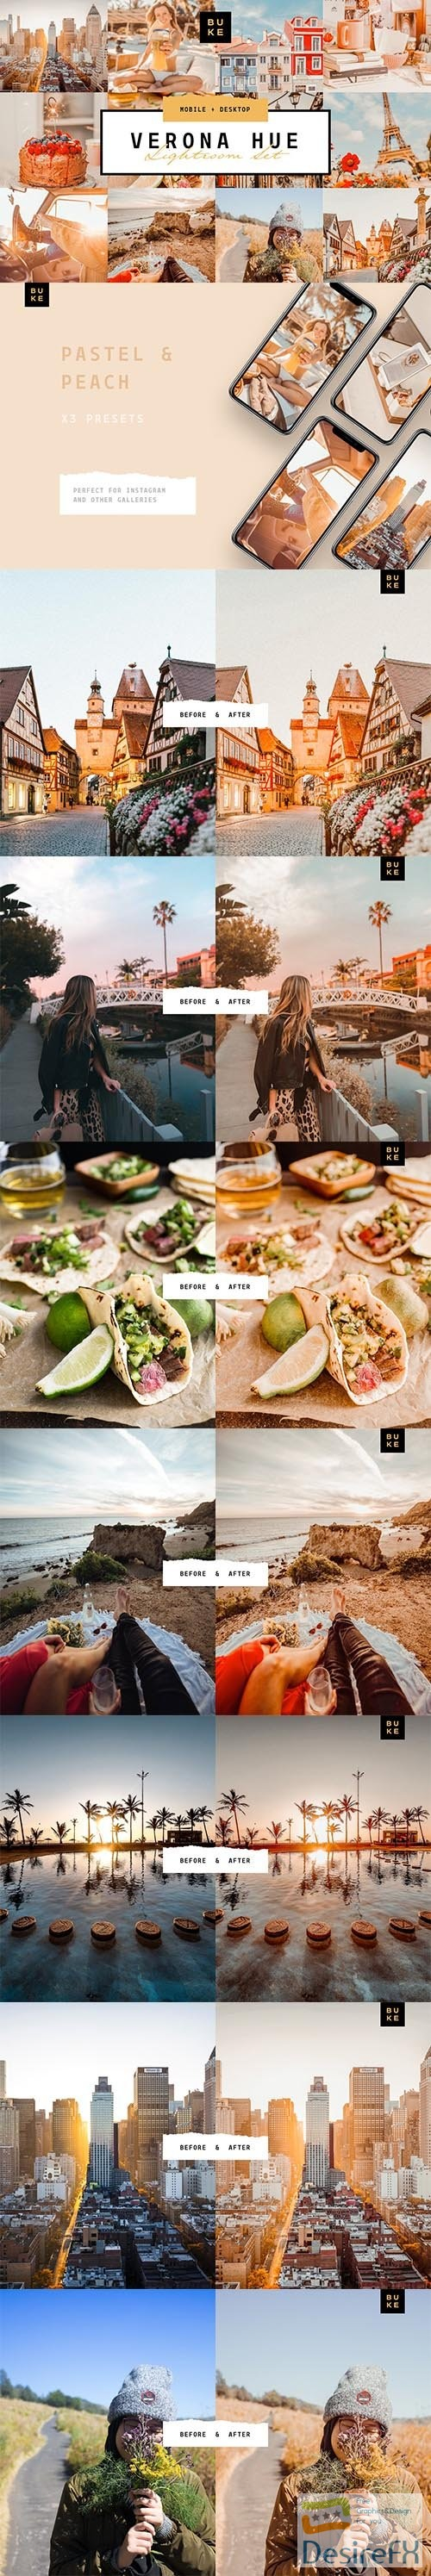 photoshop - Verona Hue Lightroom Preset Bundle 3917009